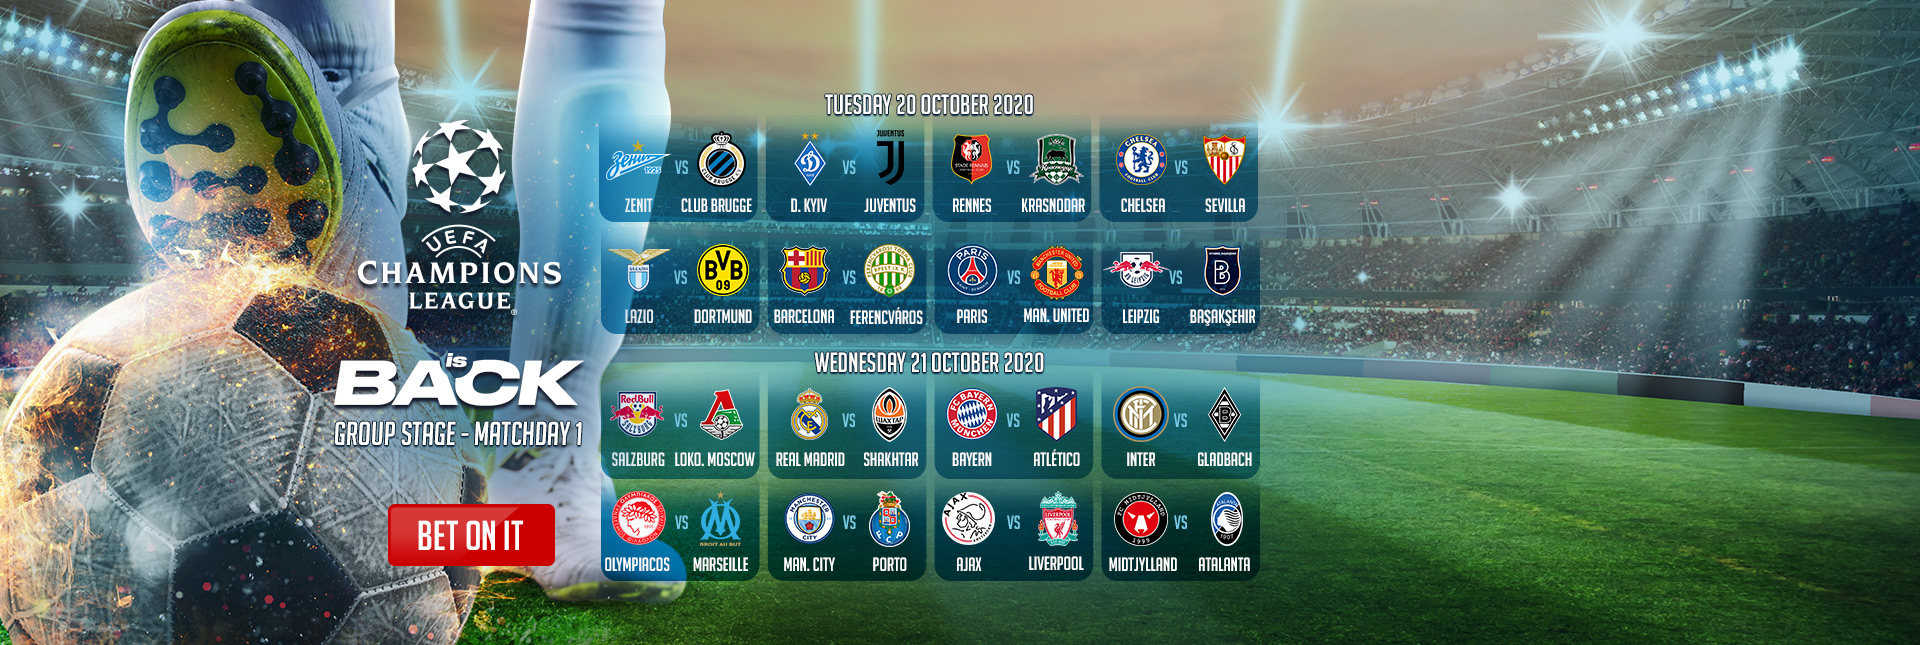 UEFA Champions League Group Stage - Matchday 1